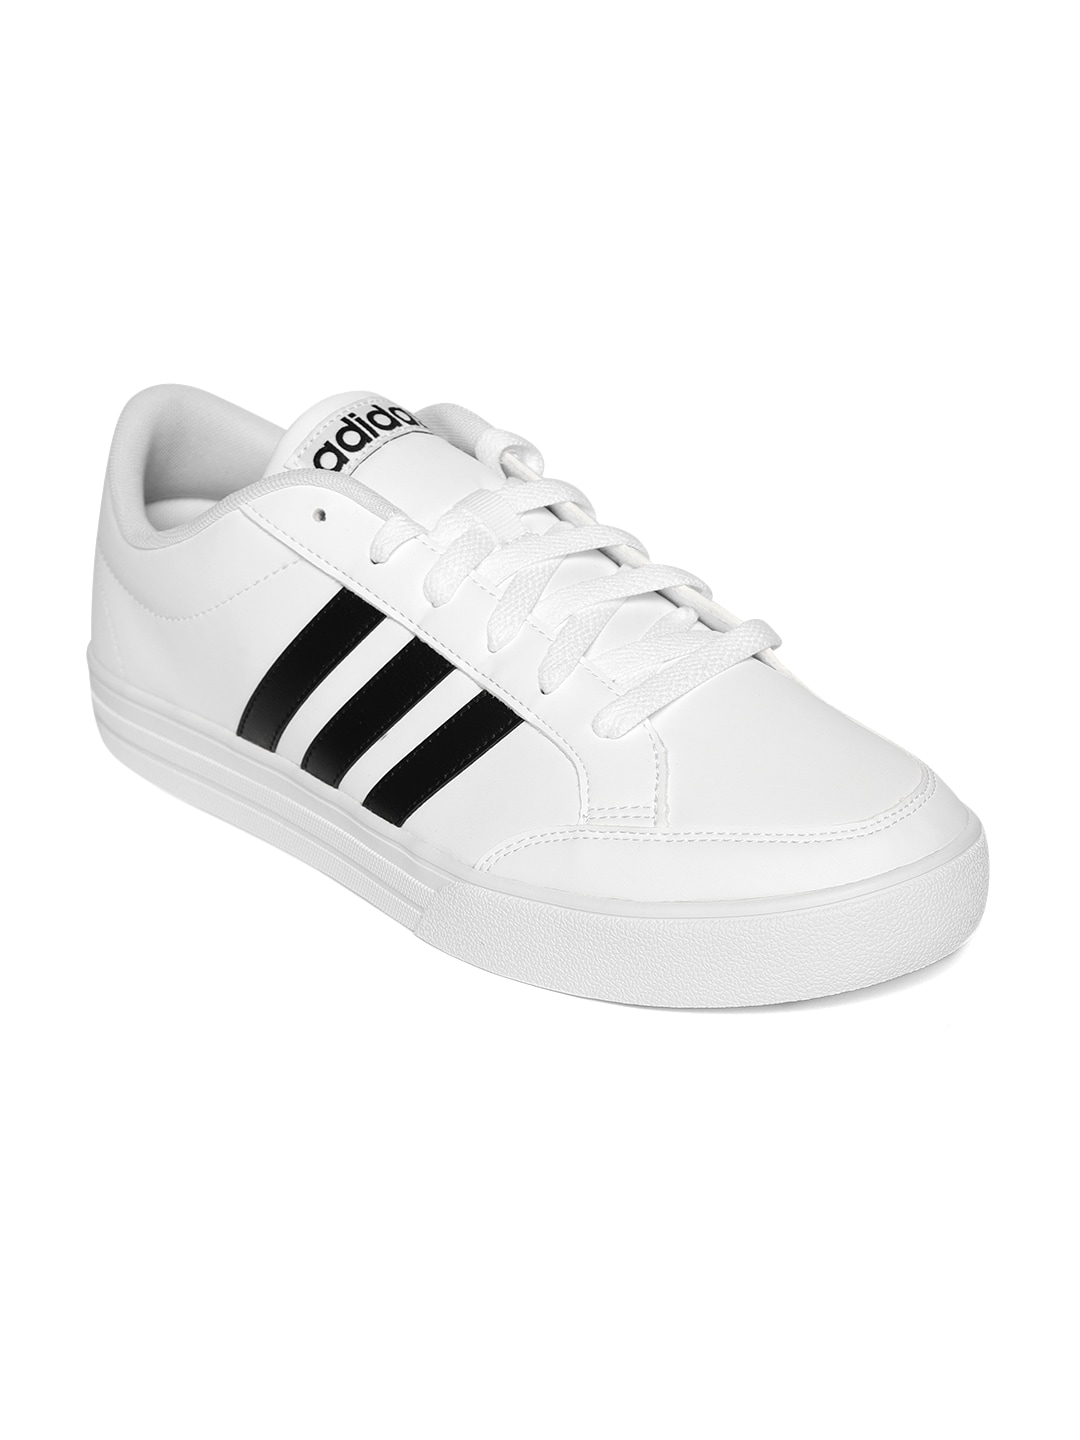 Online Adidas Buy Shoes Shoes Myntra Women Adidas Menamp; for zVLqjUMGpS